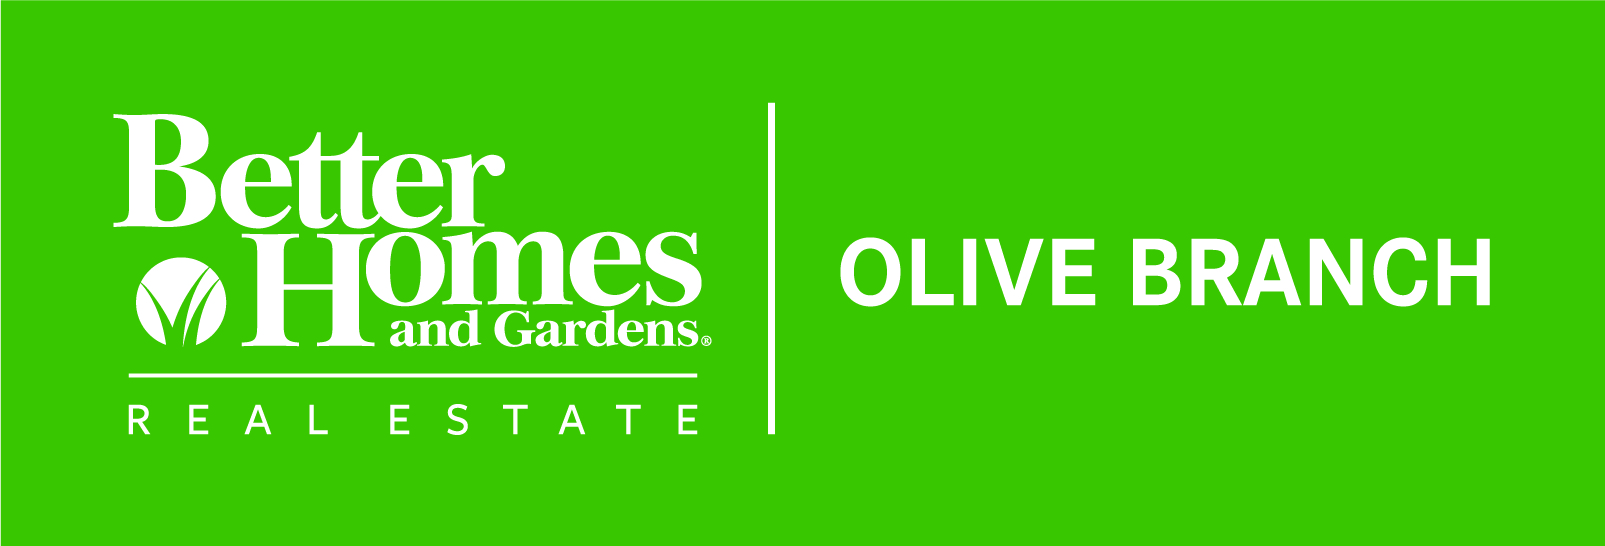 Better Homes And Gardens Real Estate Olive Branch | 863 816 5829 | Contact  Us 1715 S. Florida Avenue   Lakeland, FL 33803